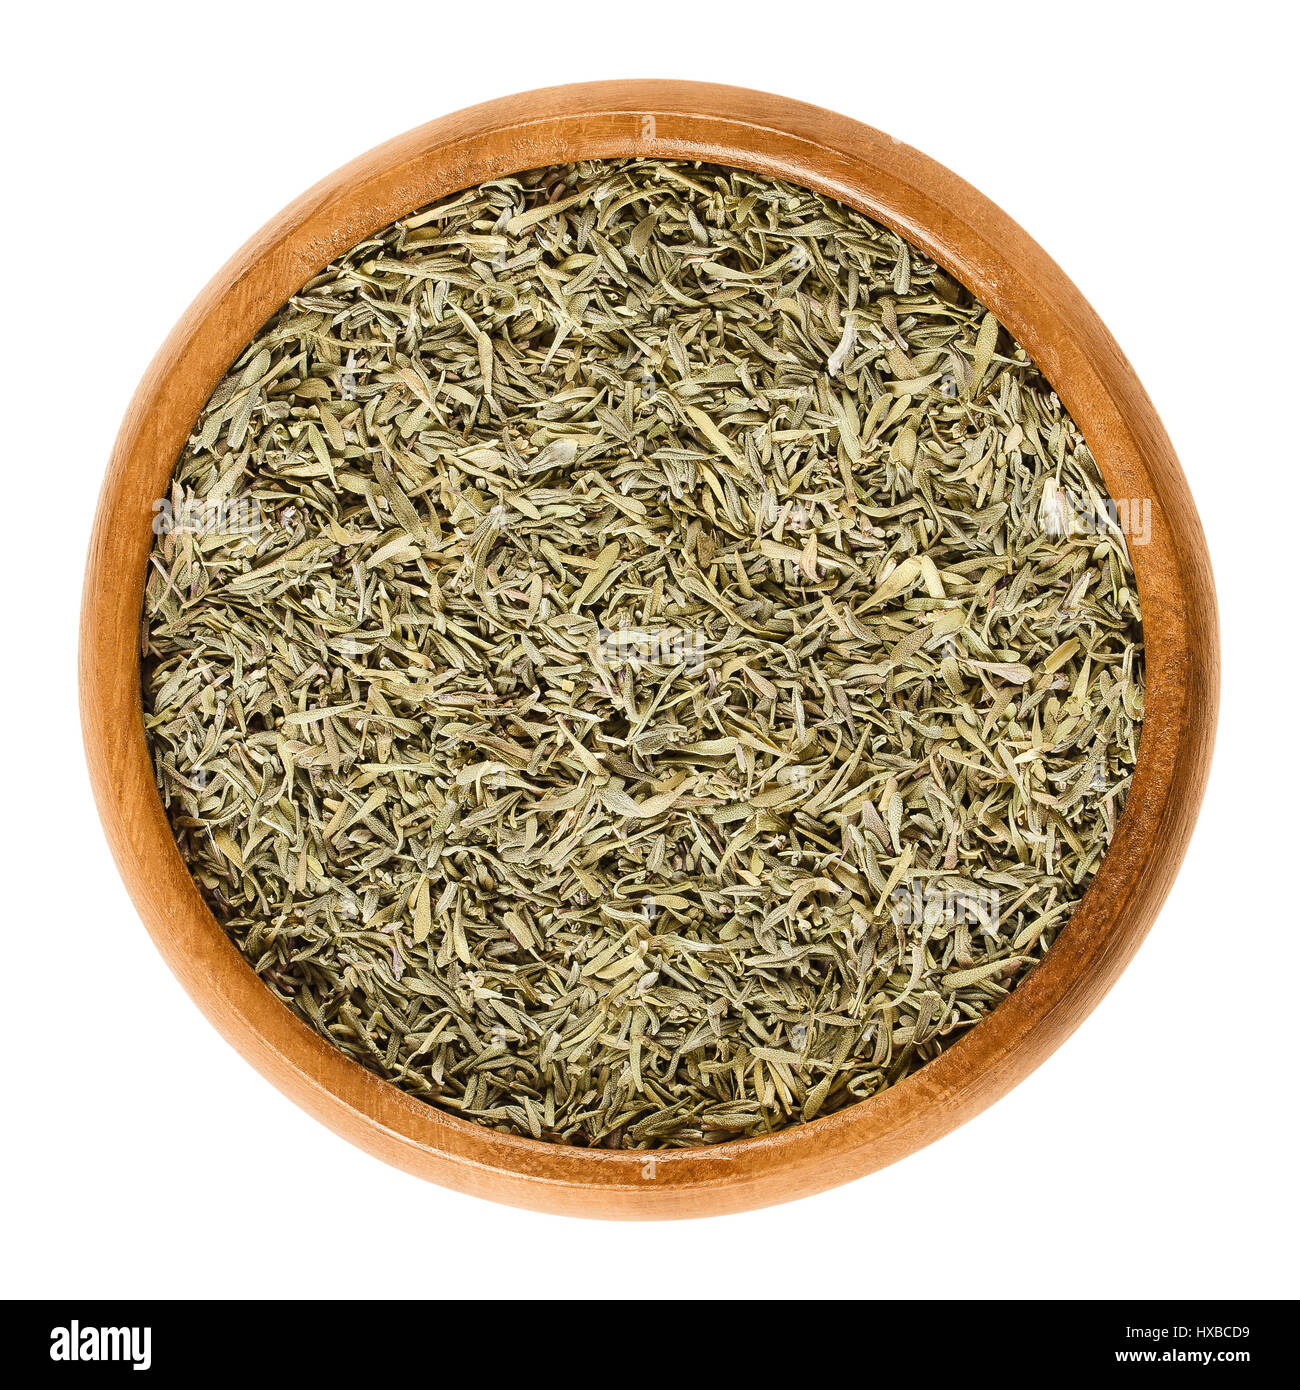 Dried thyme in wooden bowl. Minced stems. Herb with culinary and medicinal uses. Thymus vulgaris is a relative of - Stock Image